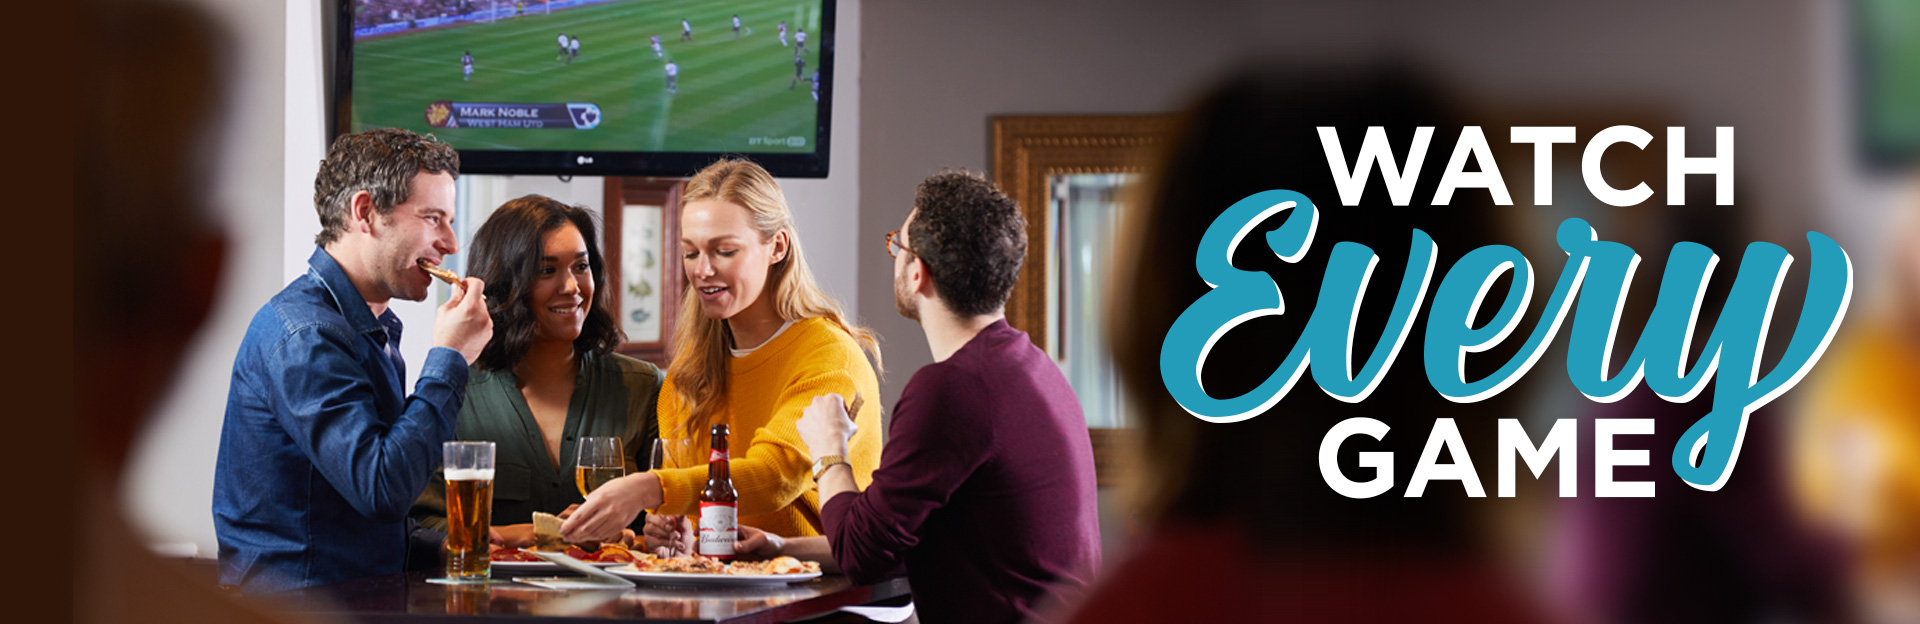 Watch Sport at The Saltdean Tavern